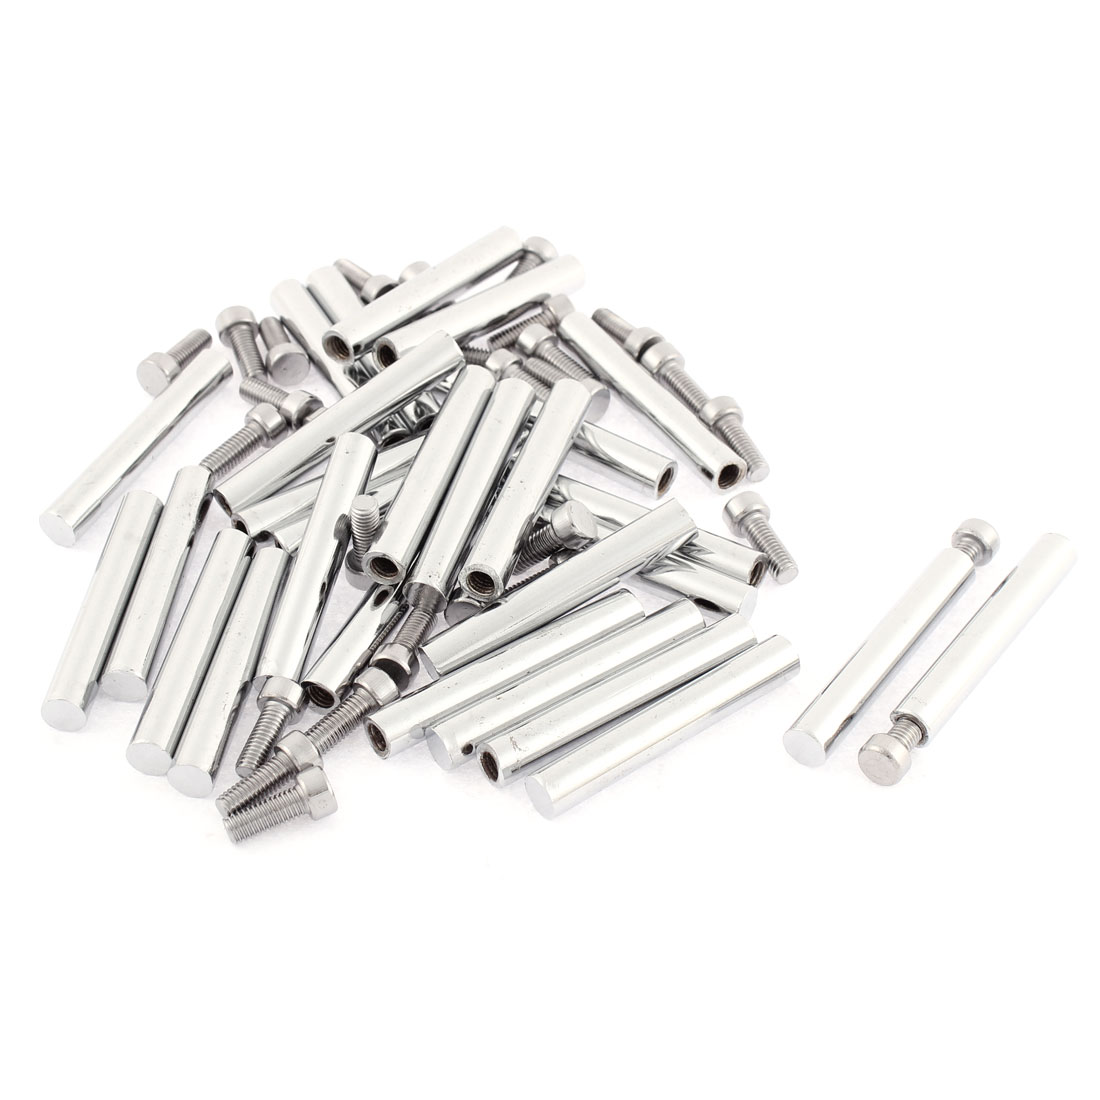 Advertisement Glass Wall Mounted Screw Nails Clamp Holder Silver Tone 8 x 55mm 30pcs